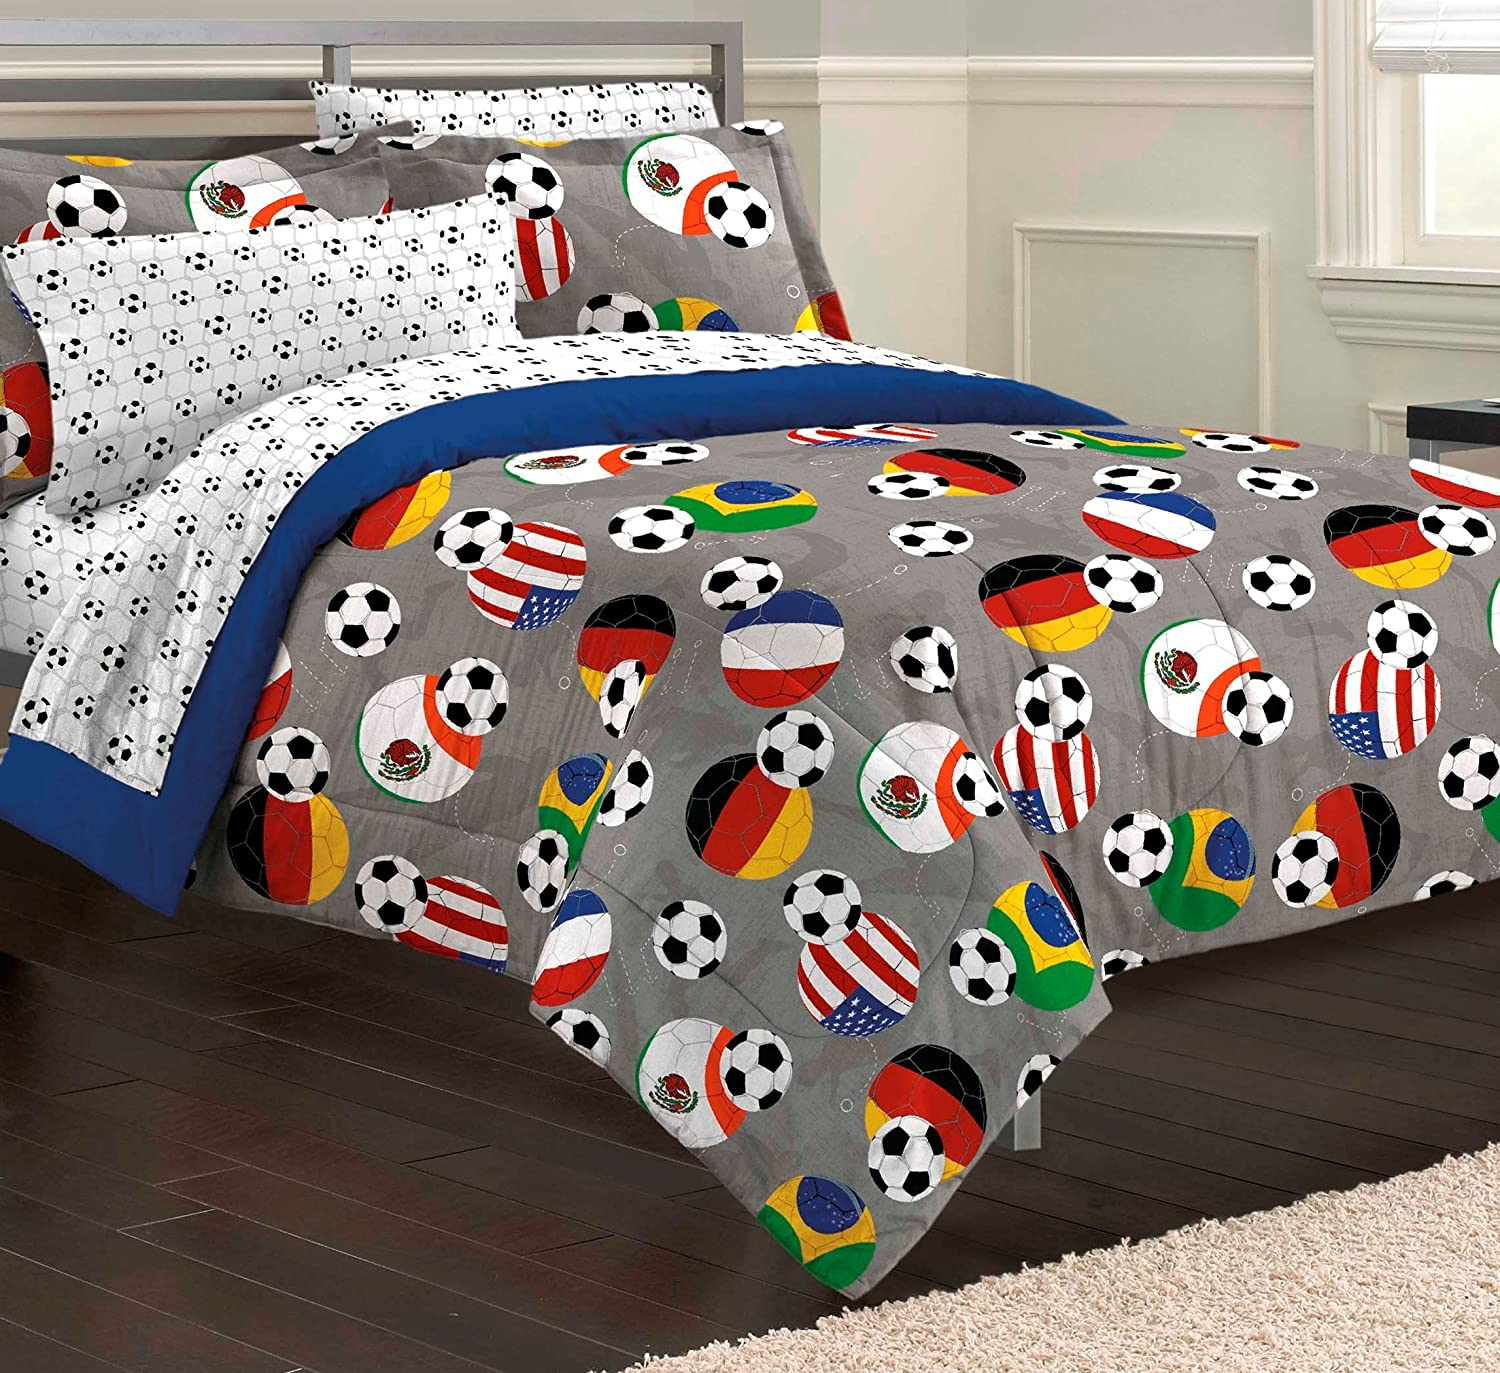 My Room Soccer Fever Teen Bedding Comforter Set, Gray, Twin